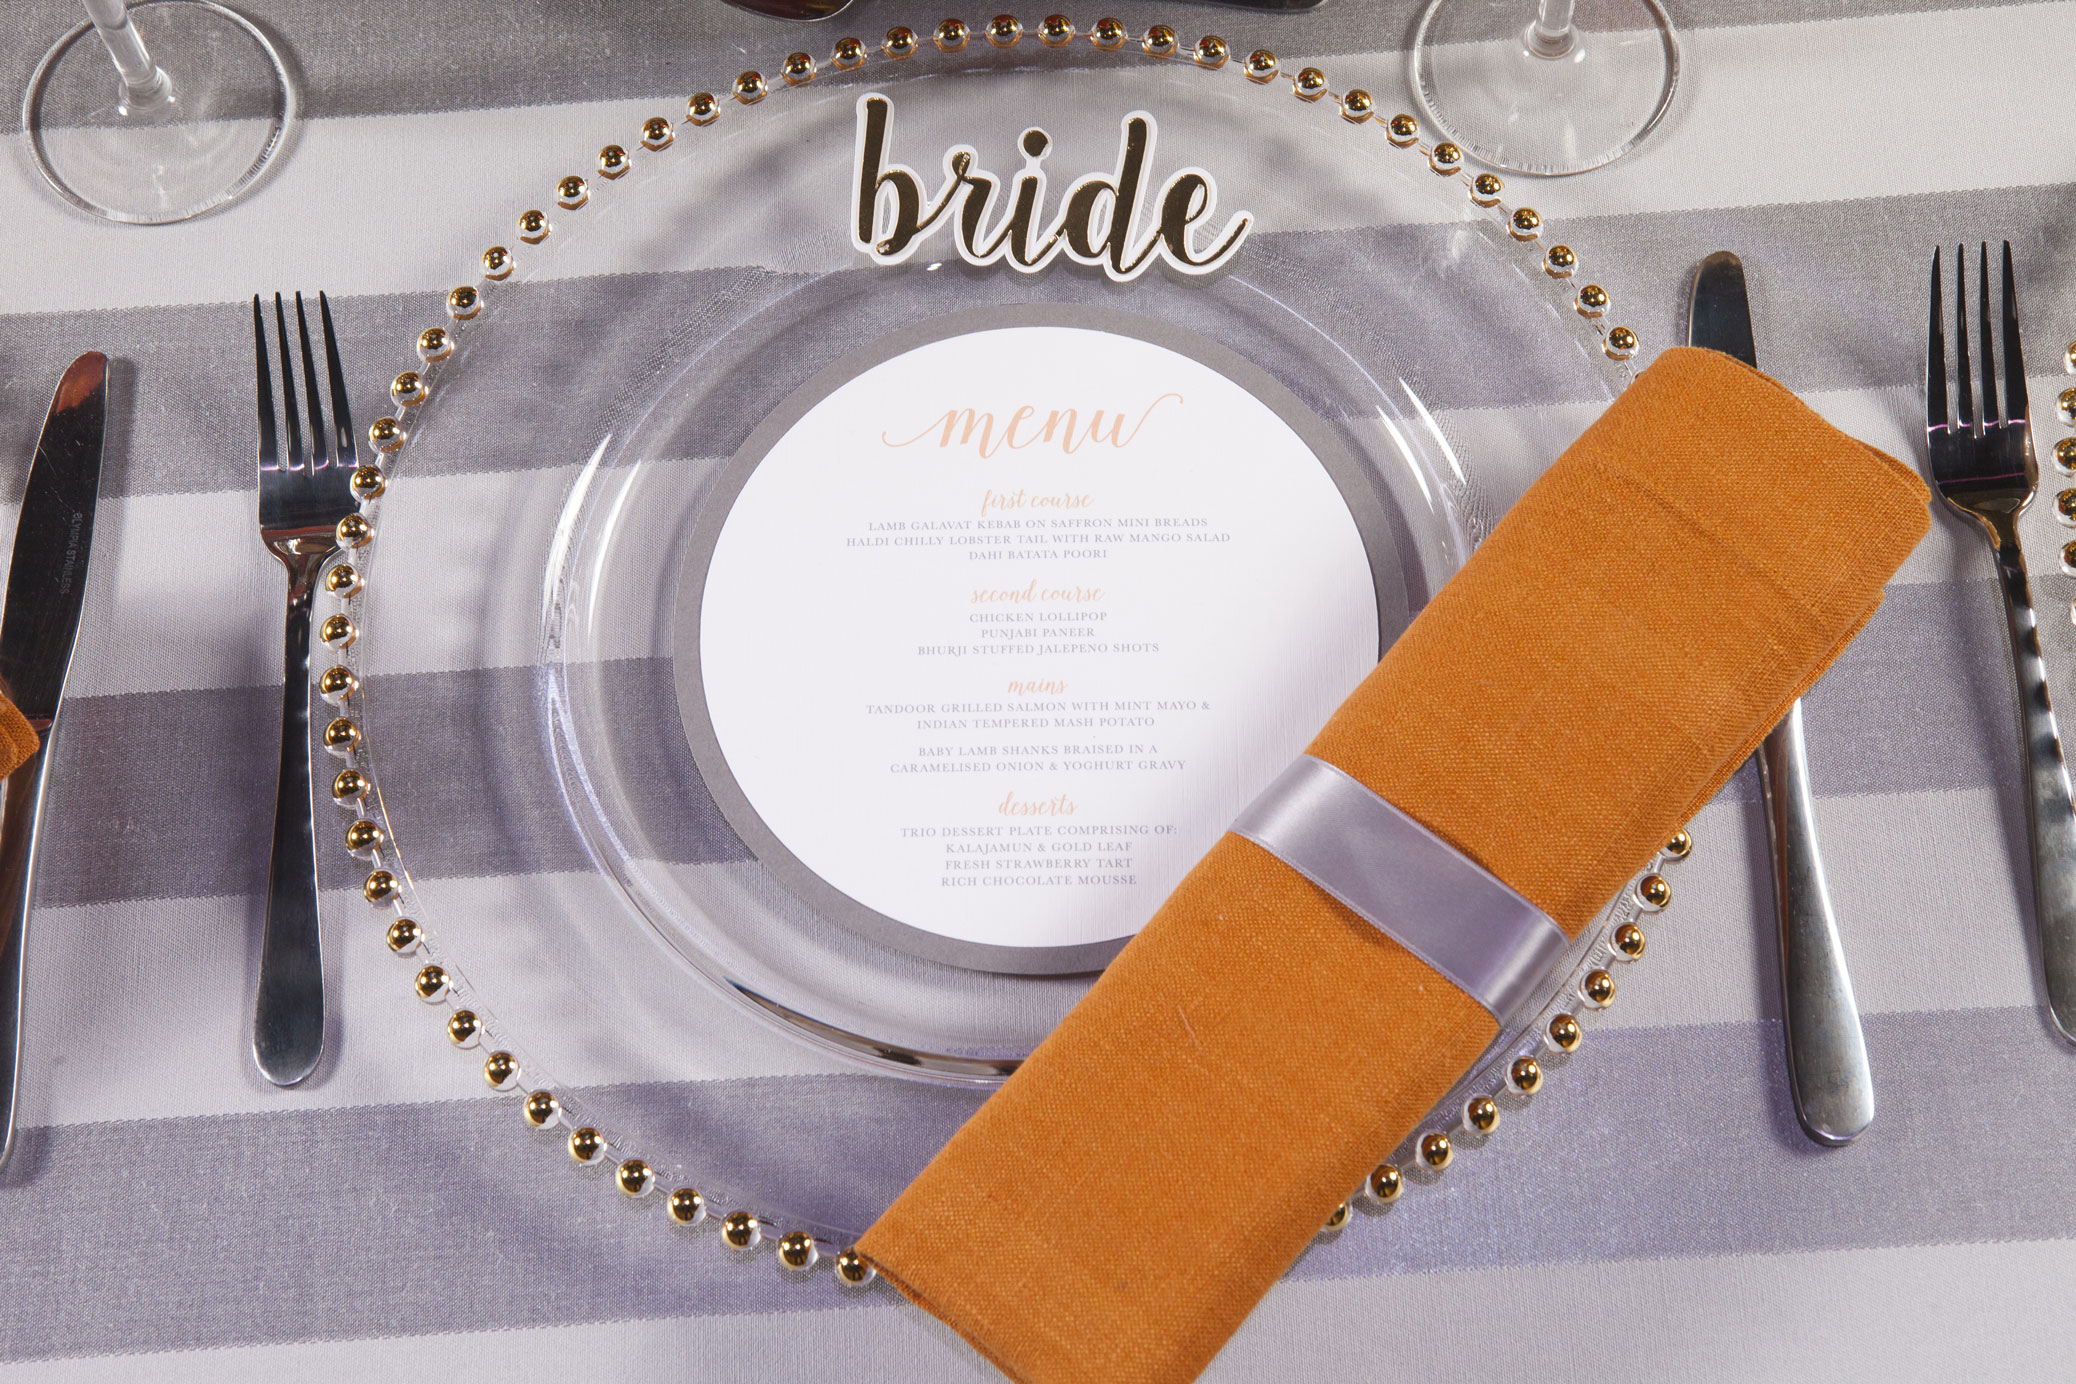 Bride place setting